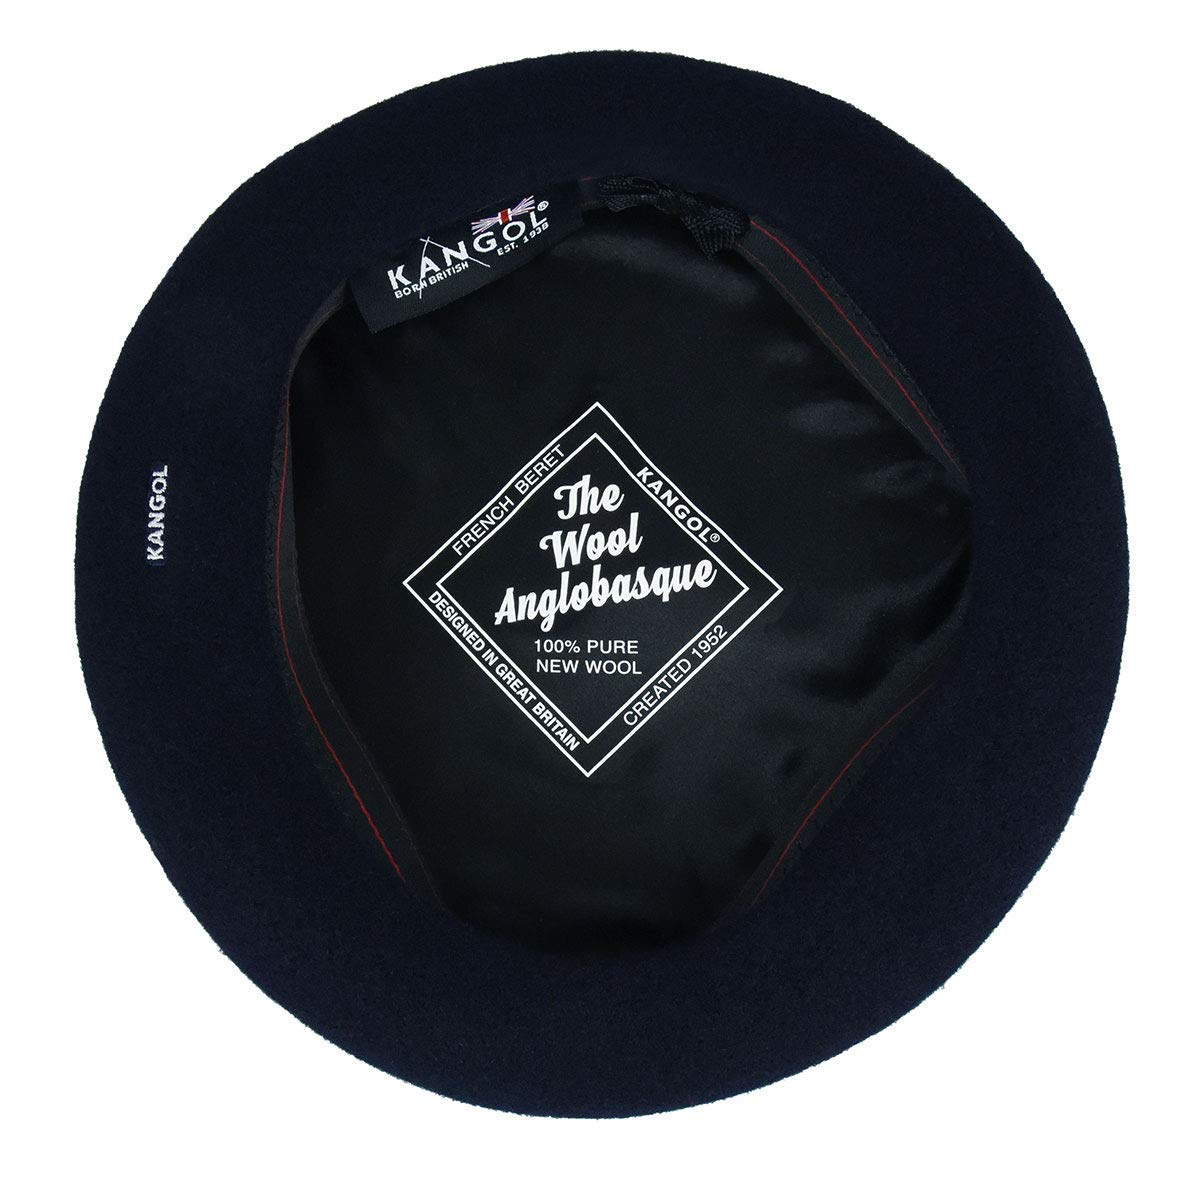 3e82f9ae Amazon.com: Kangol Anglobasque Beret: Clothing